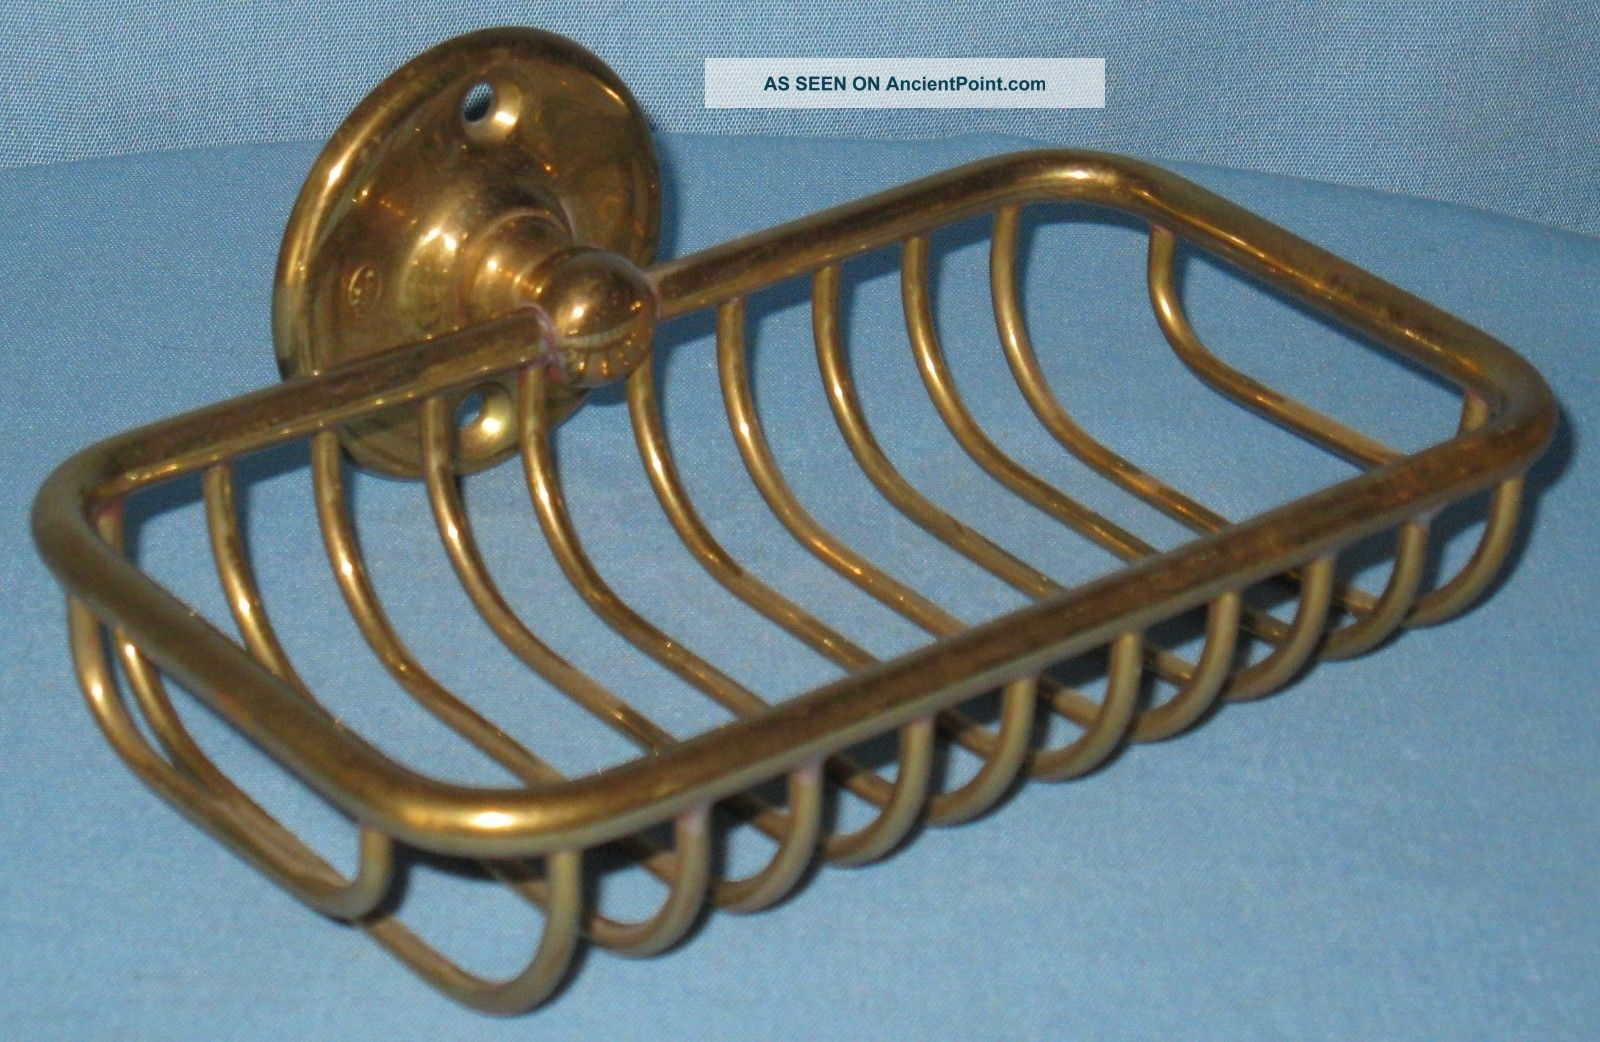 Antique/vintage Over The Side Brass Soap Dish Holder For Claw Foot Tub